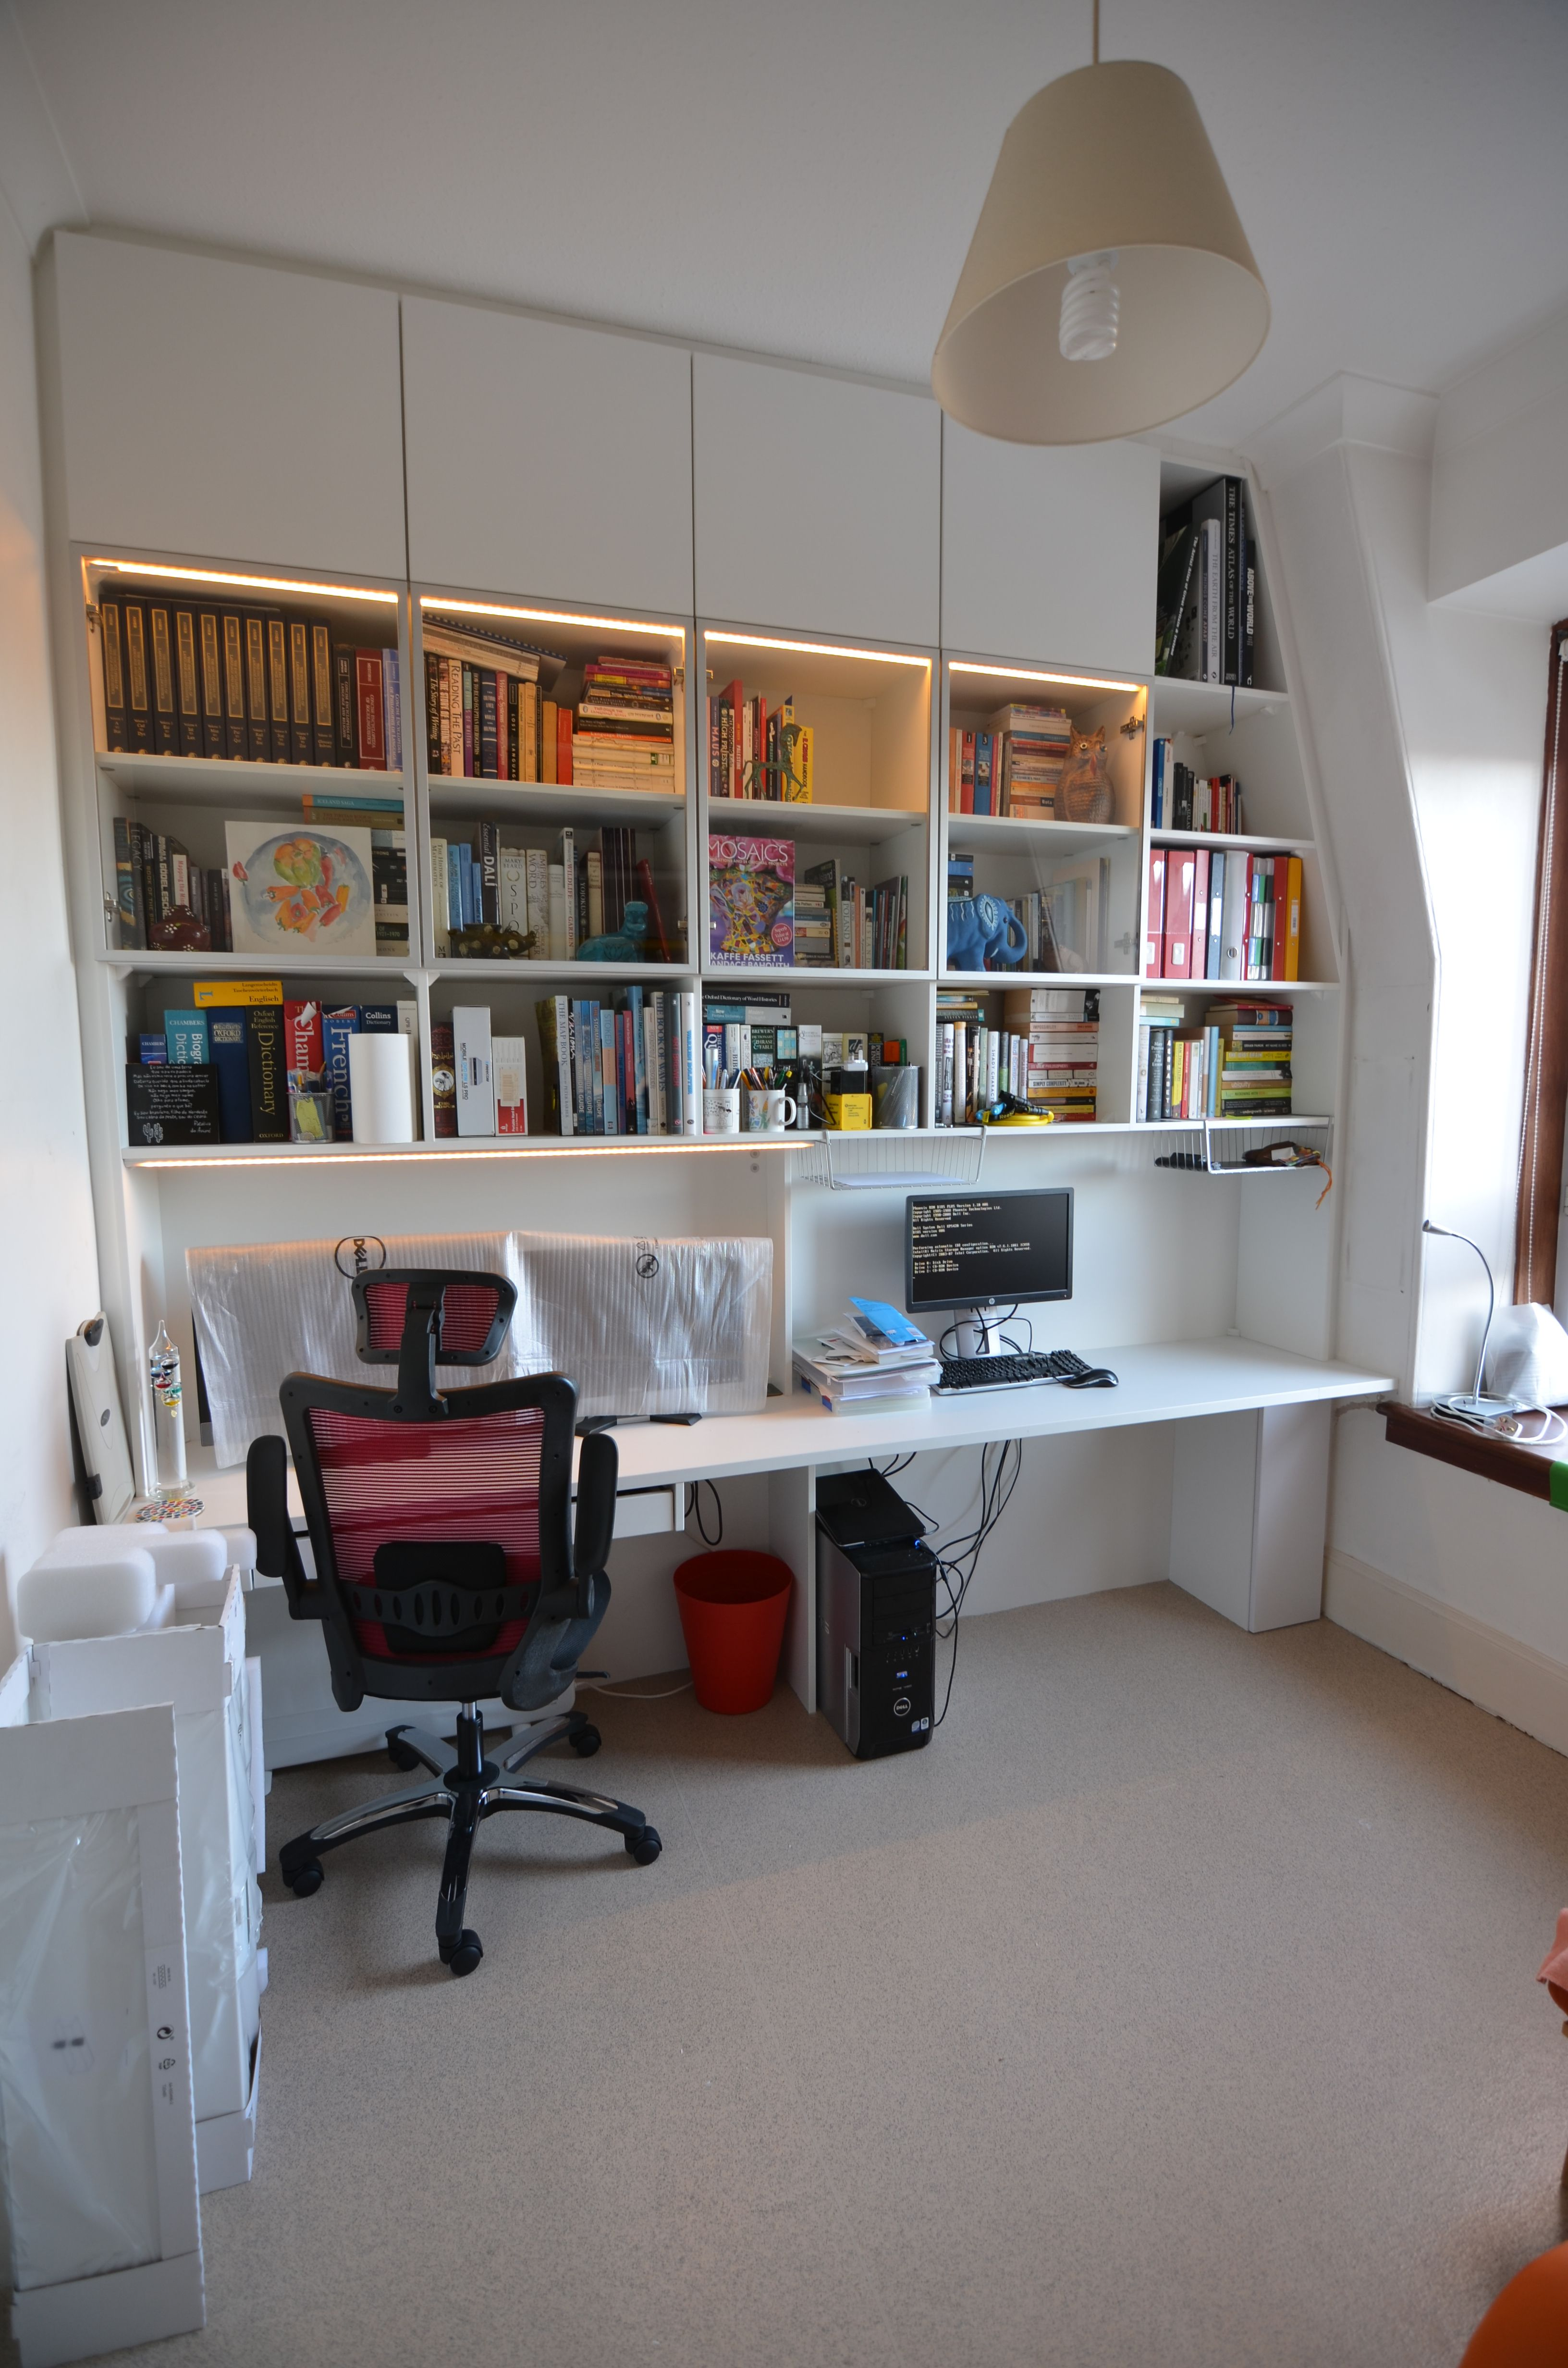 Bookshelf And Study Desk For This Home Office In White And Glass